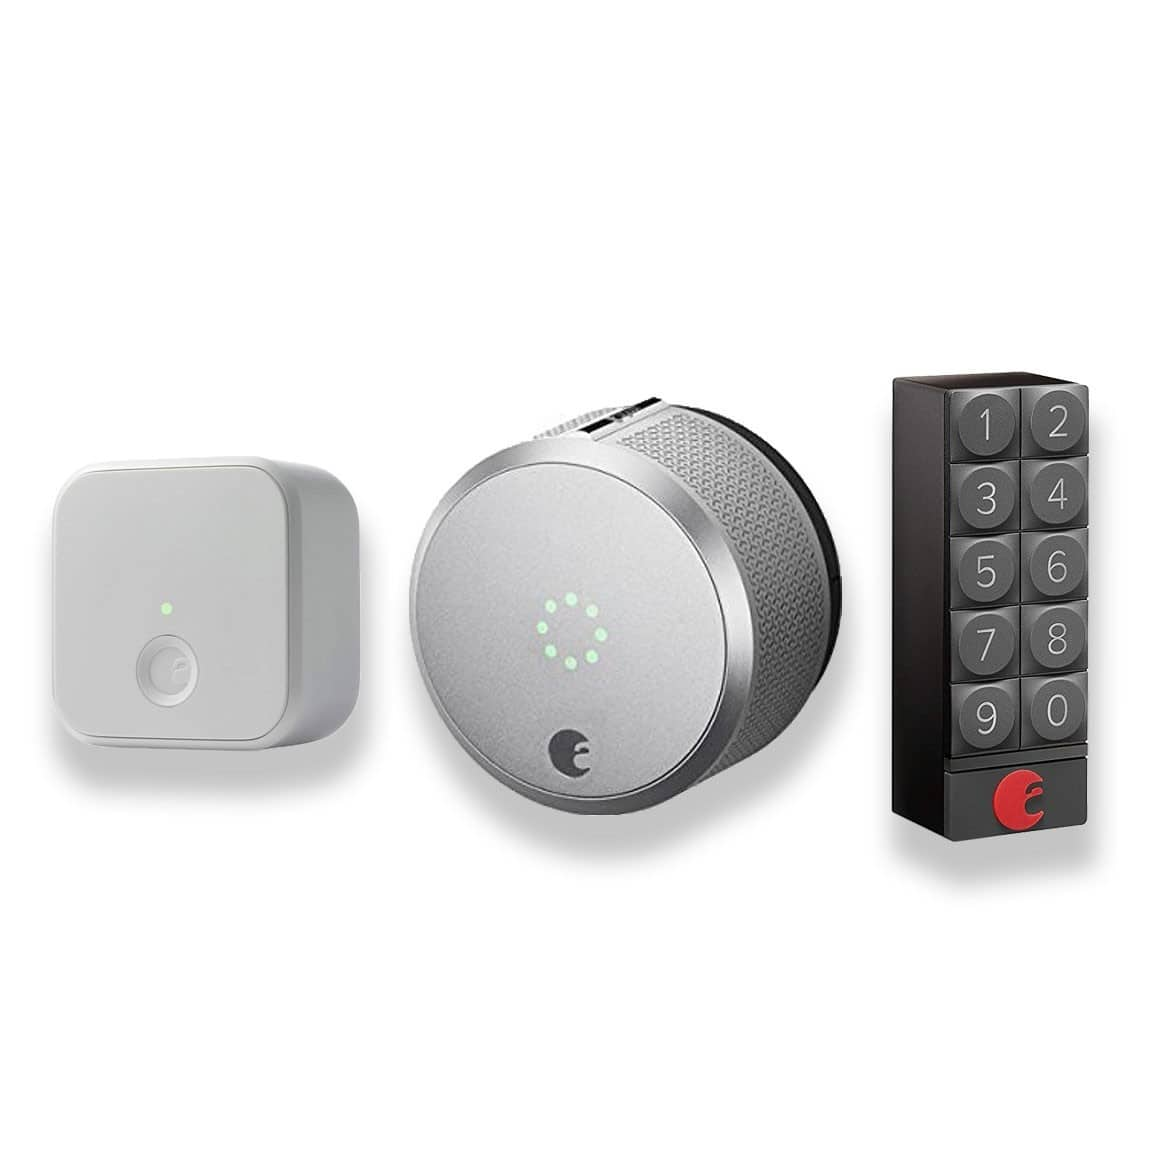 August Smart Lock Pro + Connect + August Smart Keypad (3rd Generation) for 182.95 + Free Shipping